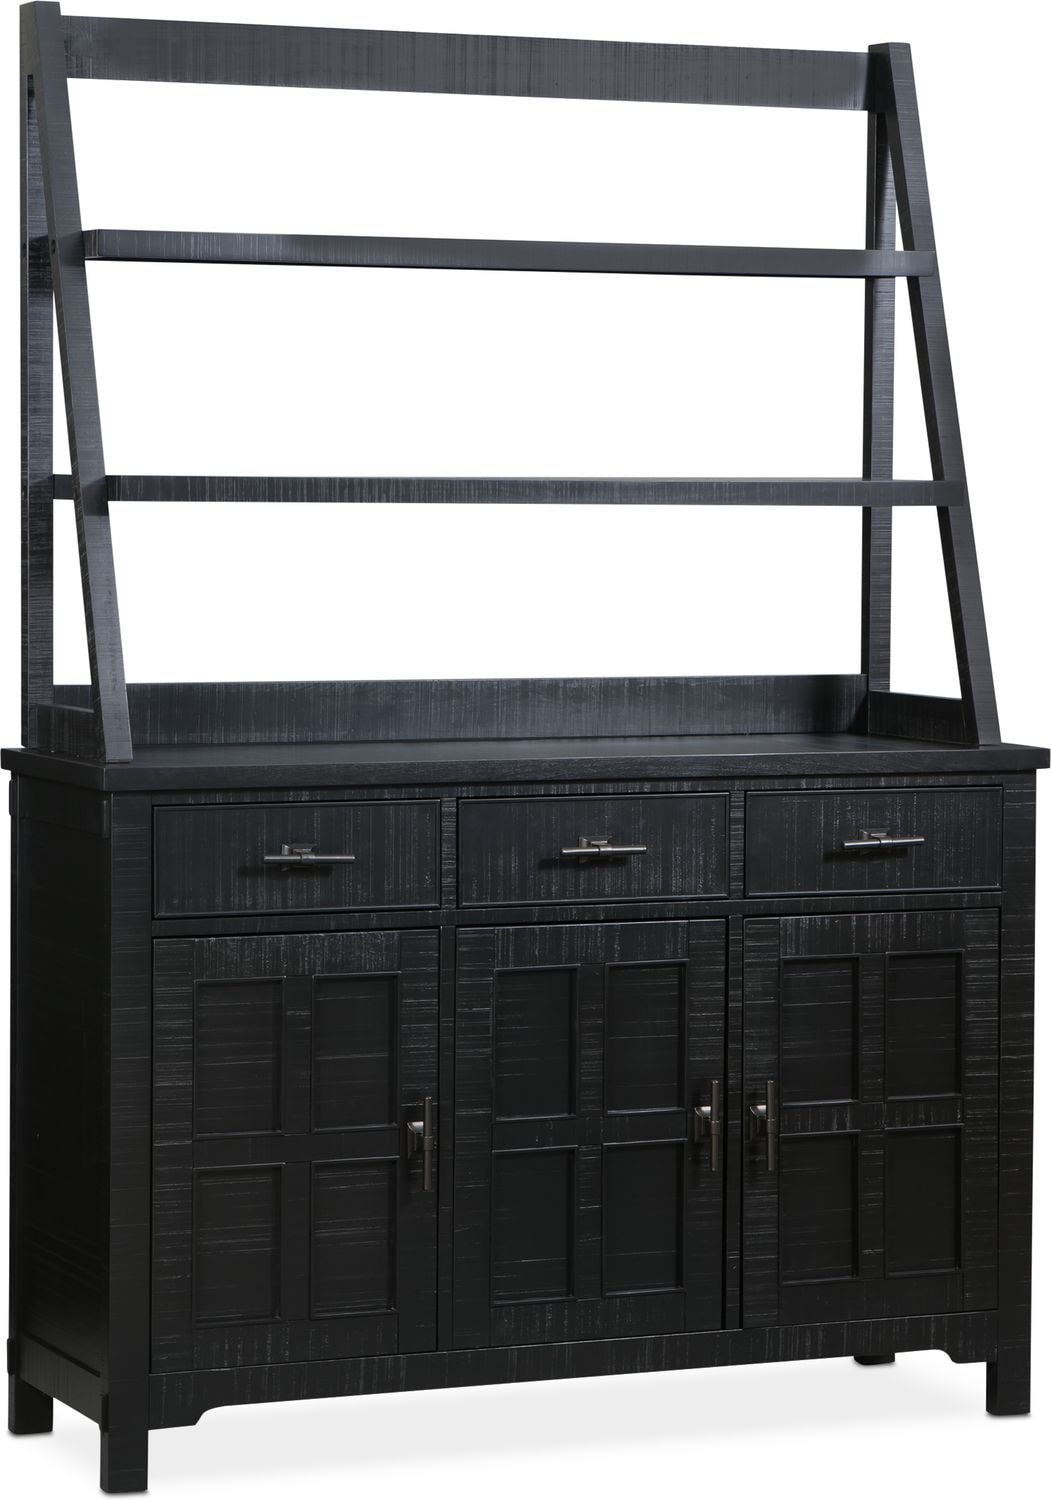 silver of cottage antique leona hutch room black amp buffet cabinet with steve dining shelves